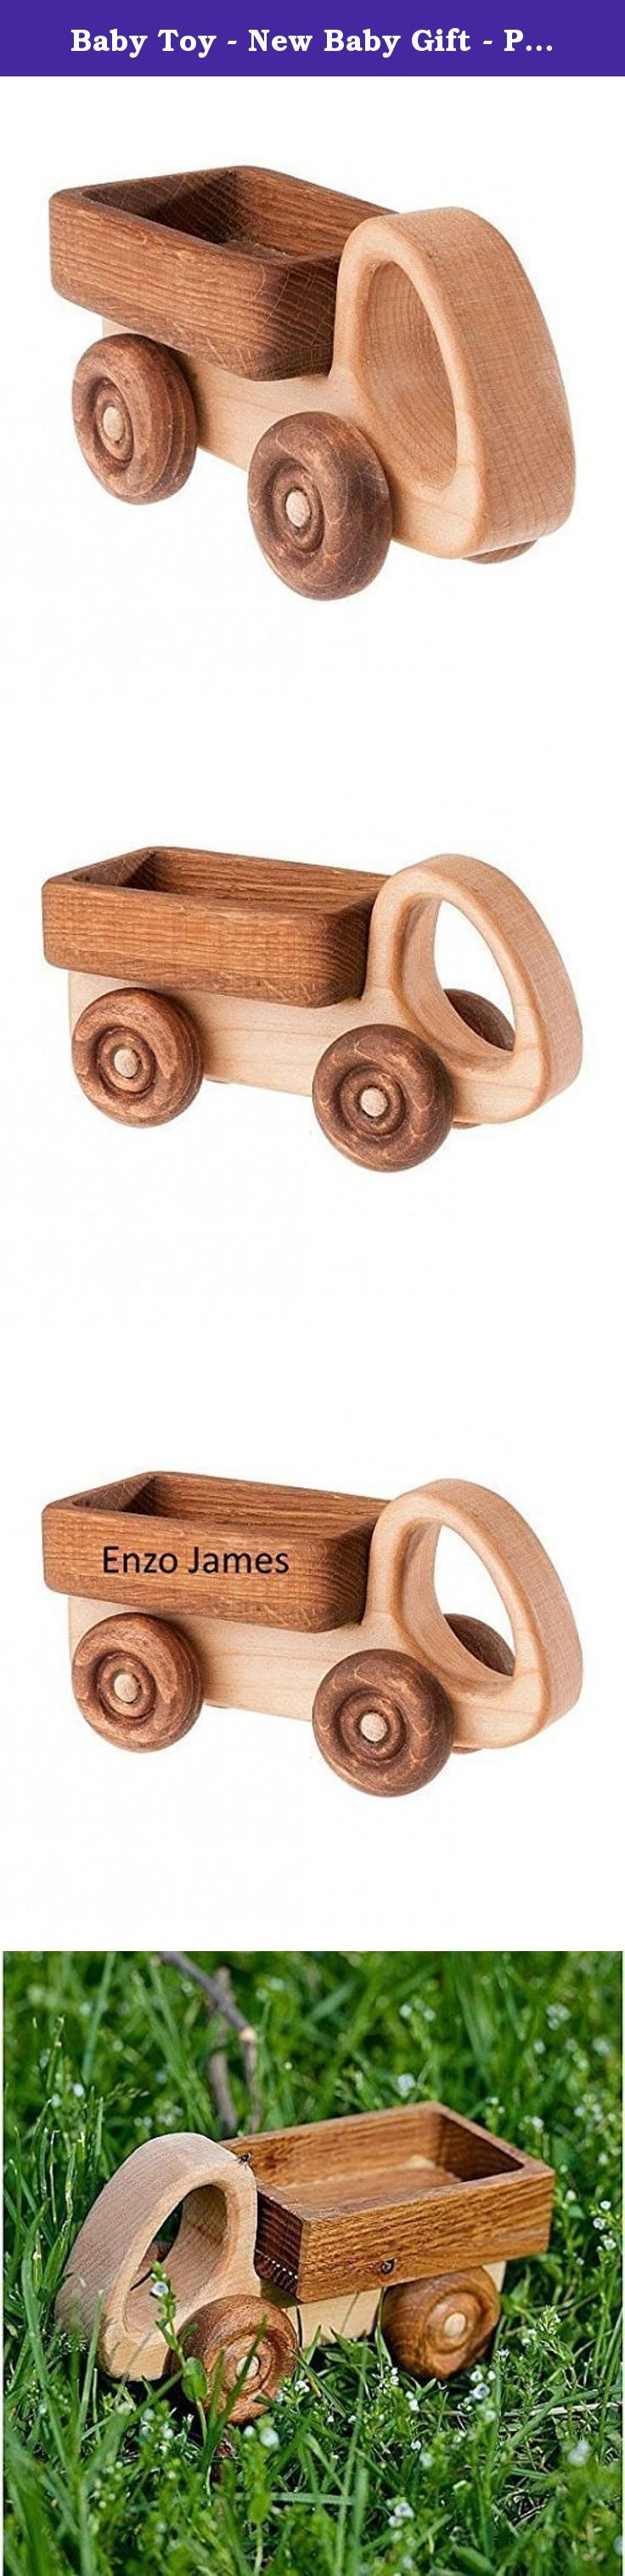 "Baby Toy - New Baby Gift - Personalized Toy Car Wooden Truck Tree Toy. For the young driver's car - car it is also the most precious gift. The surface of the toy car carefully polished, rounded edges, wheels spinning. All the toys are covered in a natural way - ""polishing"" the food of the highest standard with linseed oil. What makes a machine can safely play in the mode of rolled-chewed-shook-rattled-chewed swivel casters. Wood - an ideal material for children's toys, hard and soft by..."